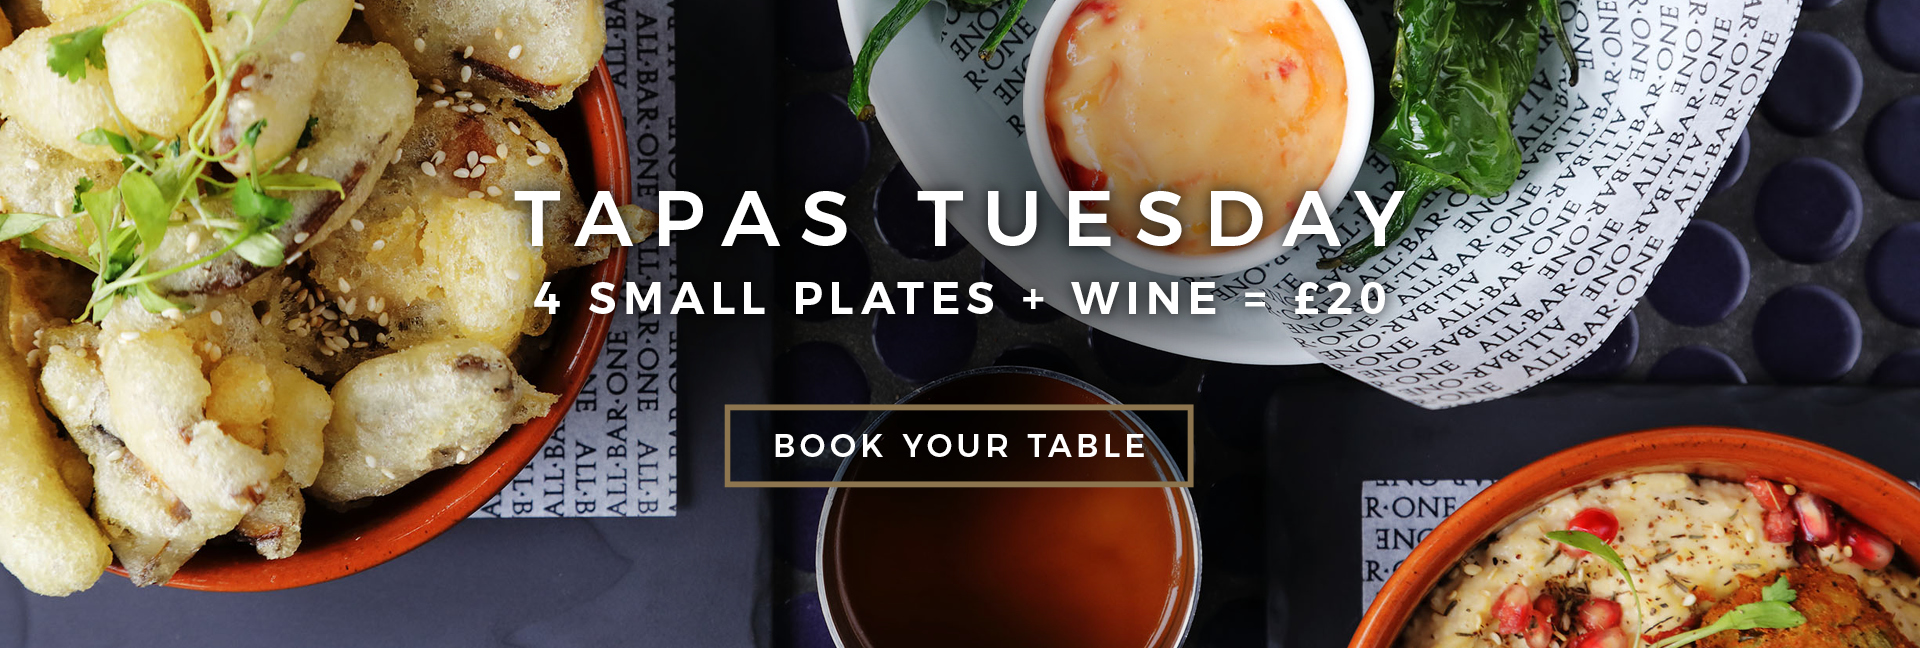 Tapas Tuesday at All Bar One Milton Keynes - Book now